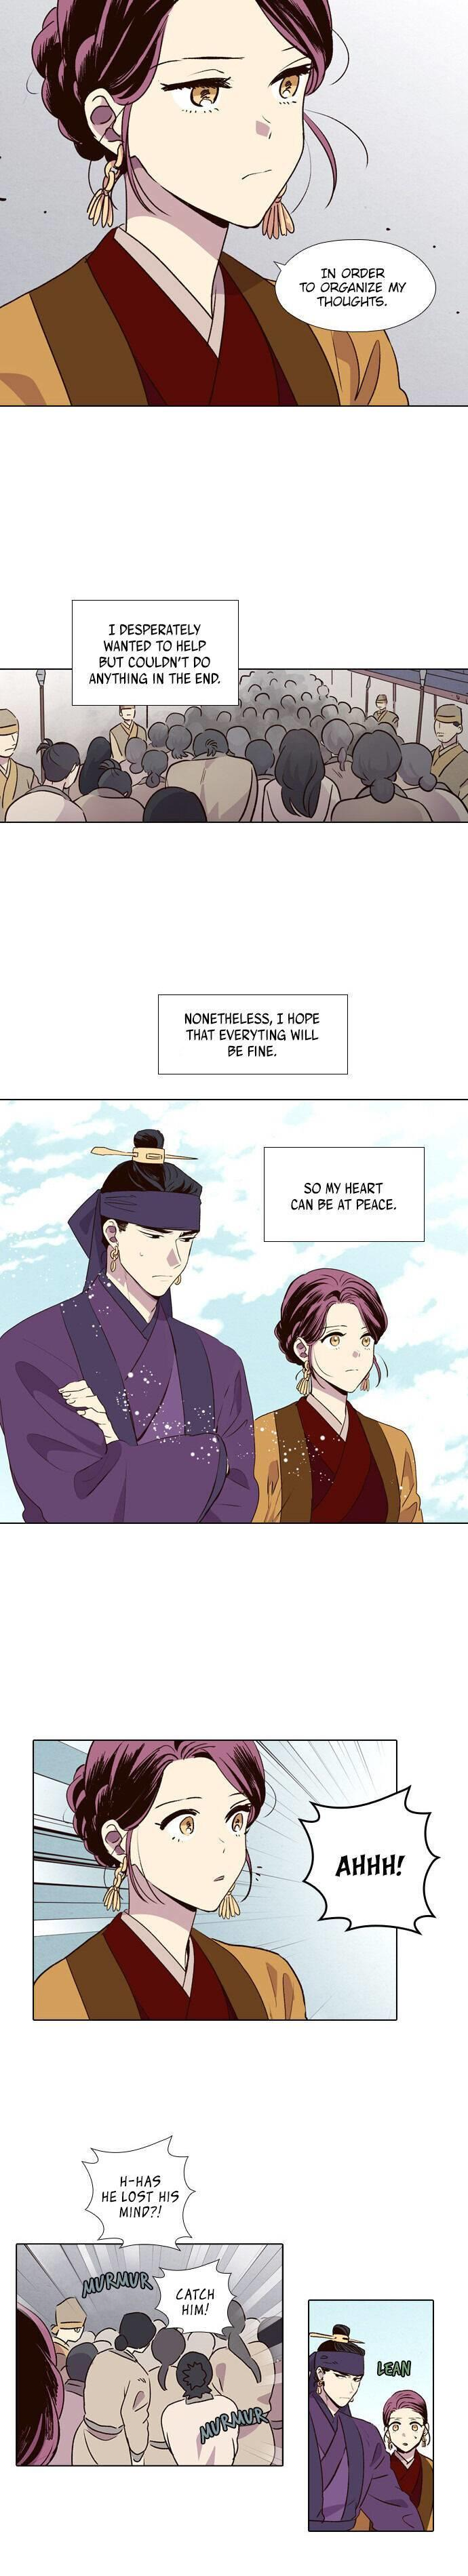 The Moon That Rises In The Day Chapter 184 page 12 - Mangakakalots.com